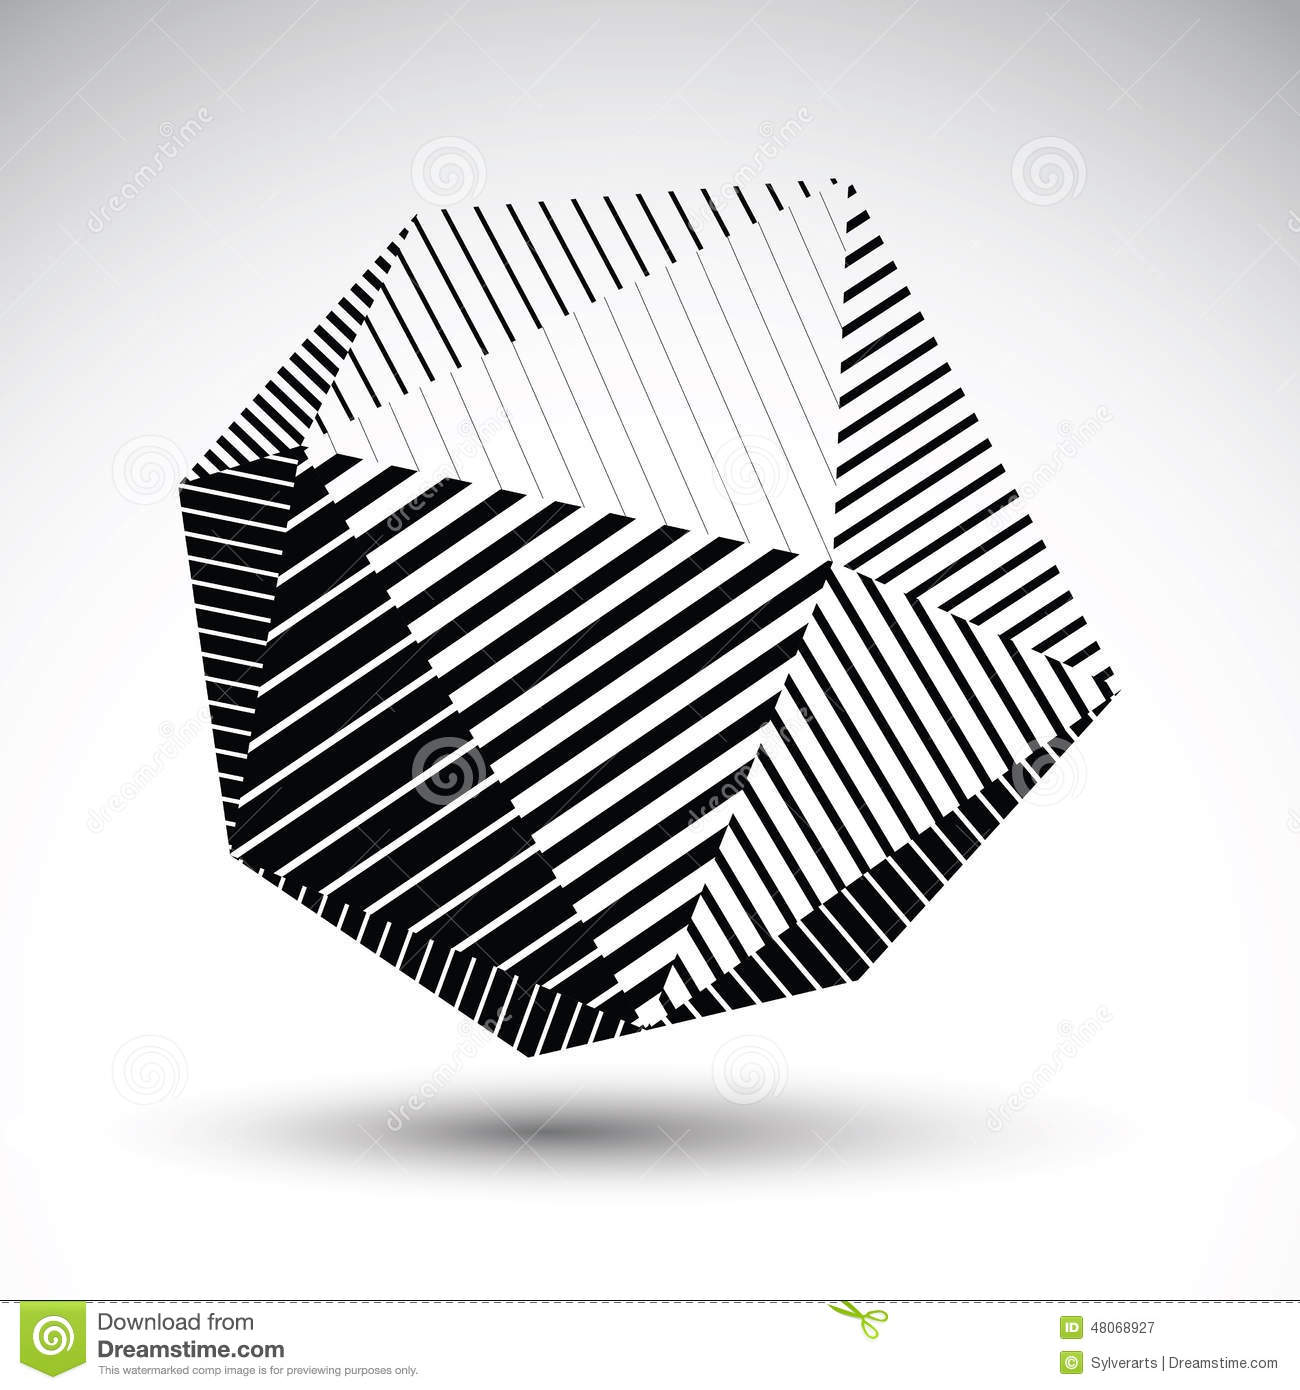 3d Shape Line Drawings : Abstract d spherical vector contrast pattern art orb